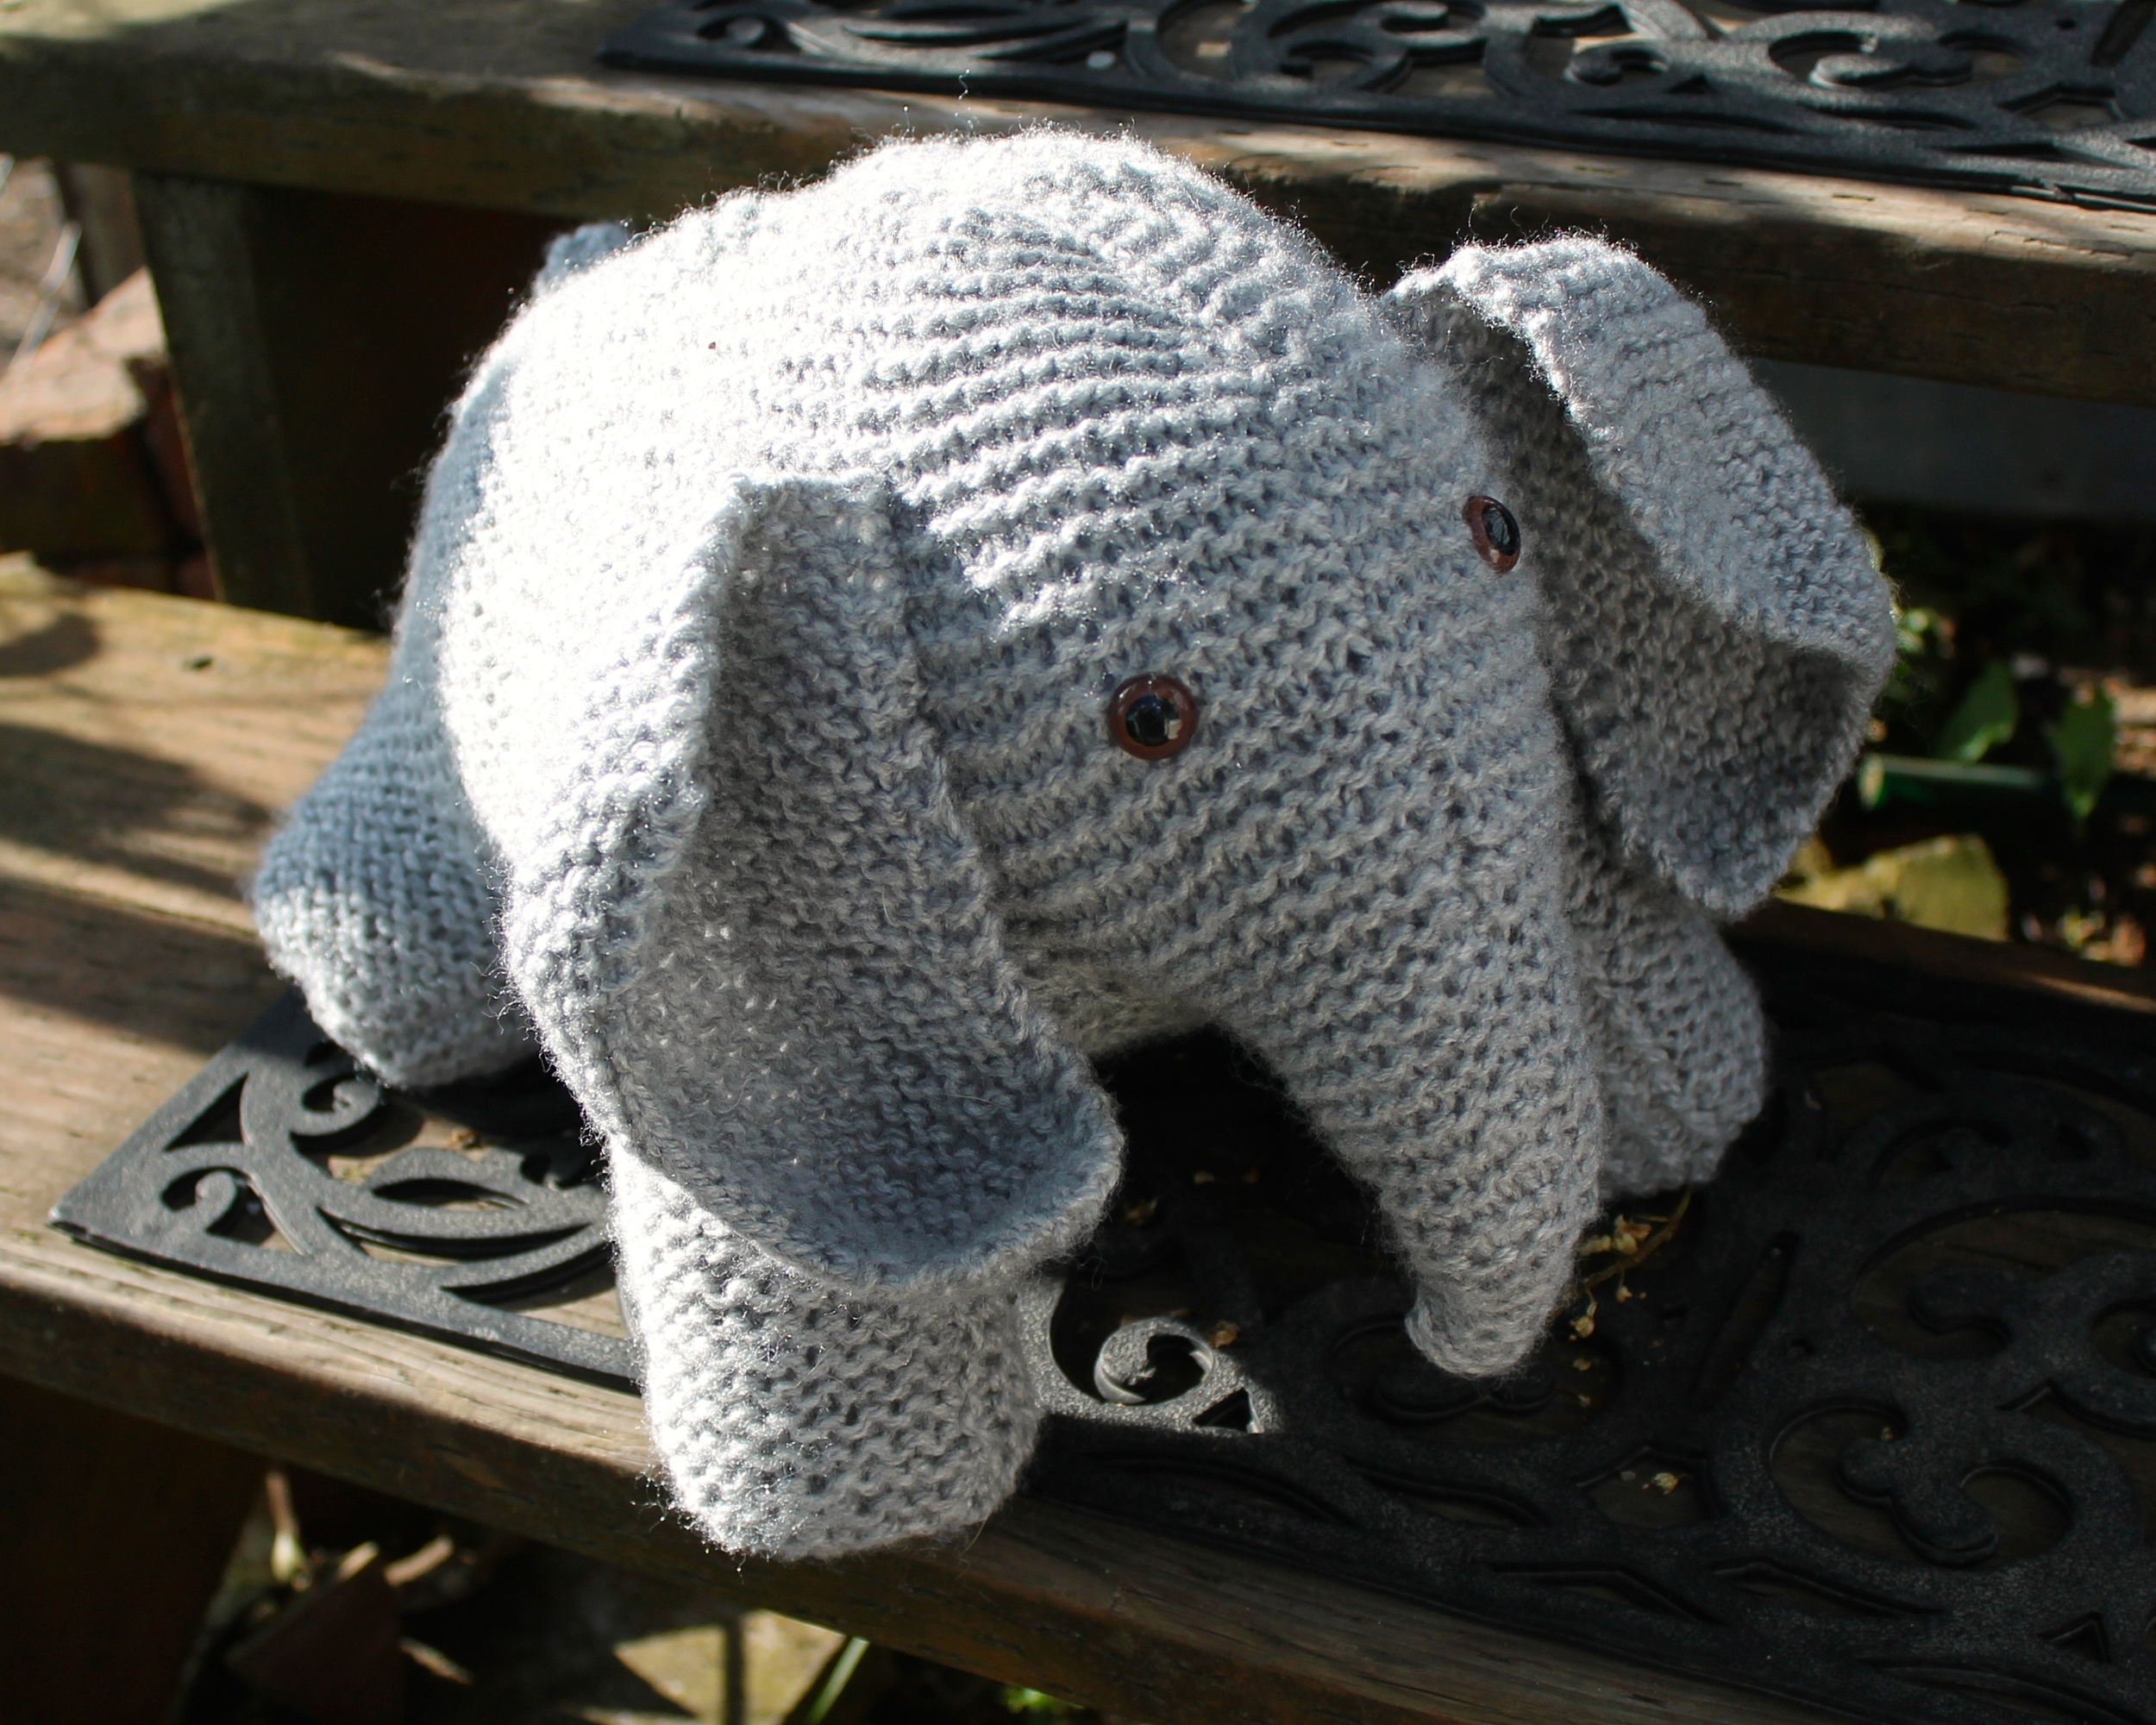 Gray knit stuffed elephant with brown glass eyes, sitting on porch steps